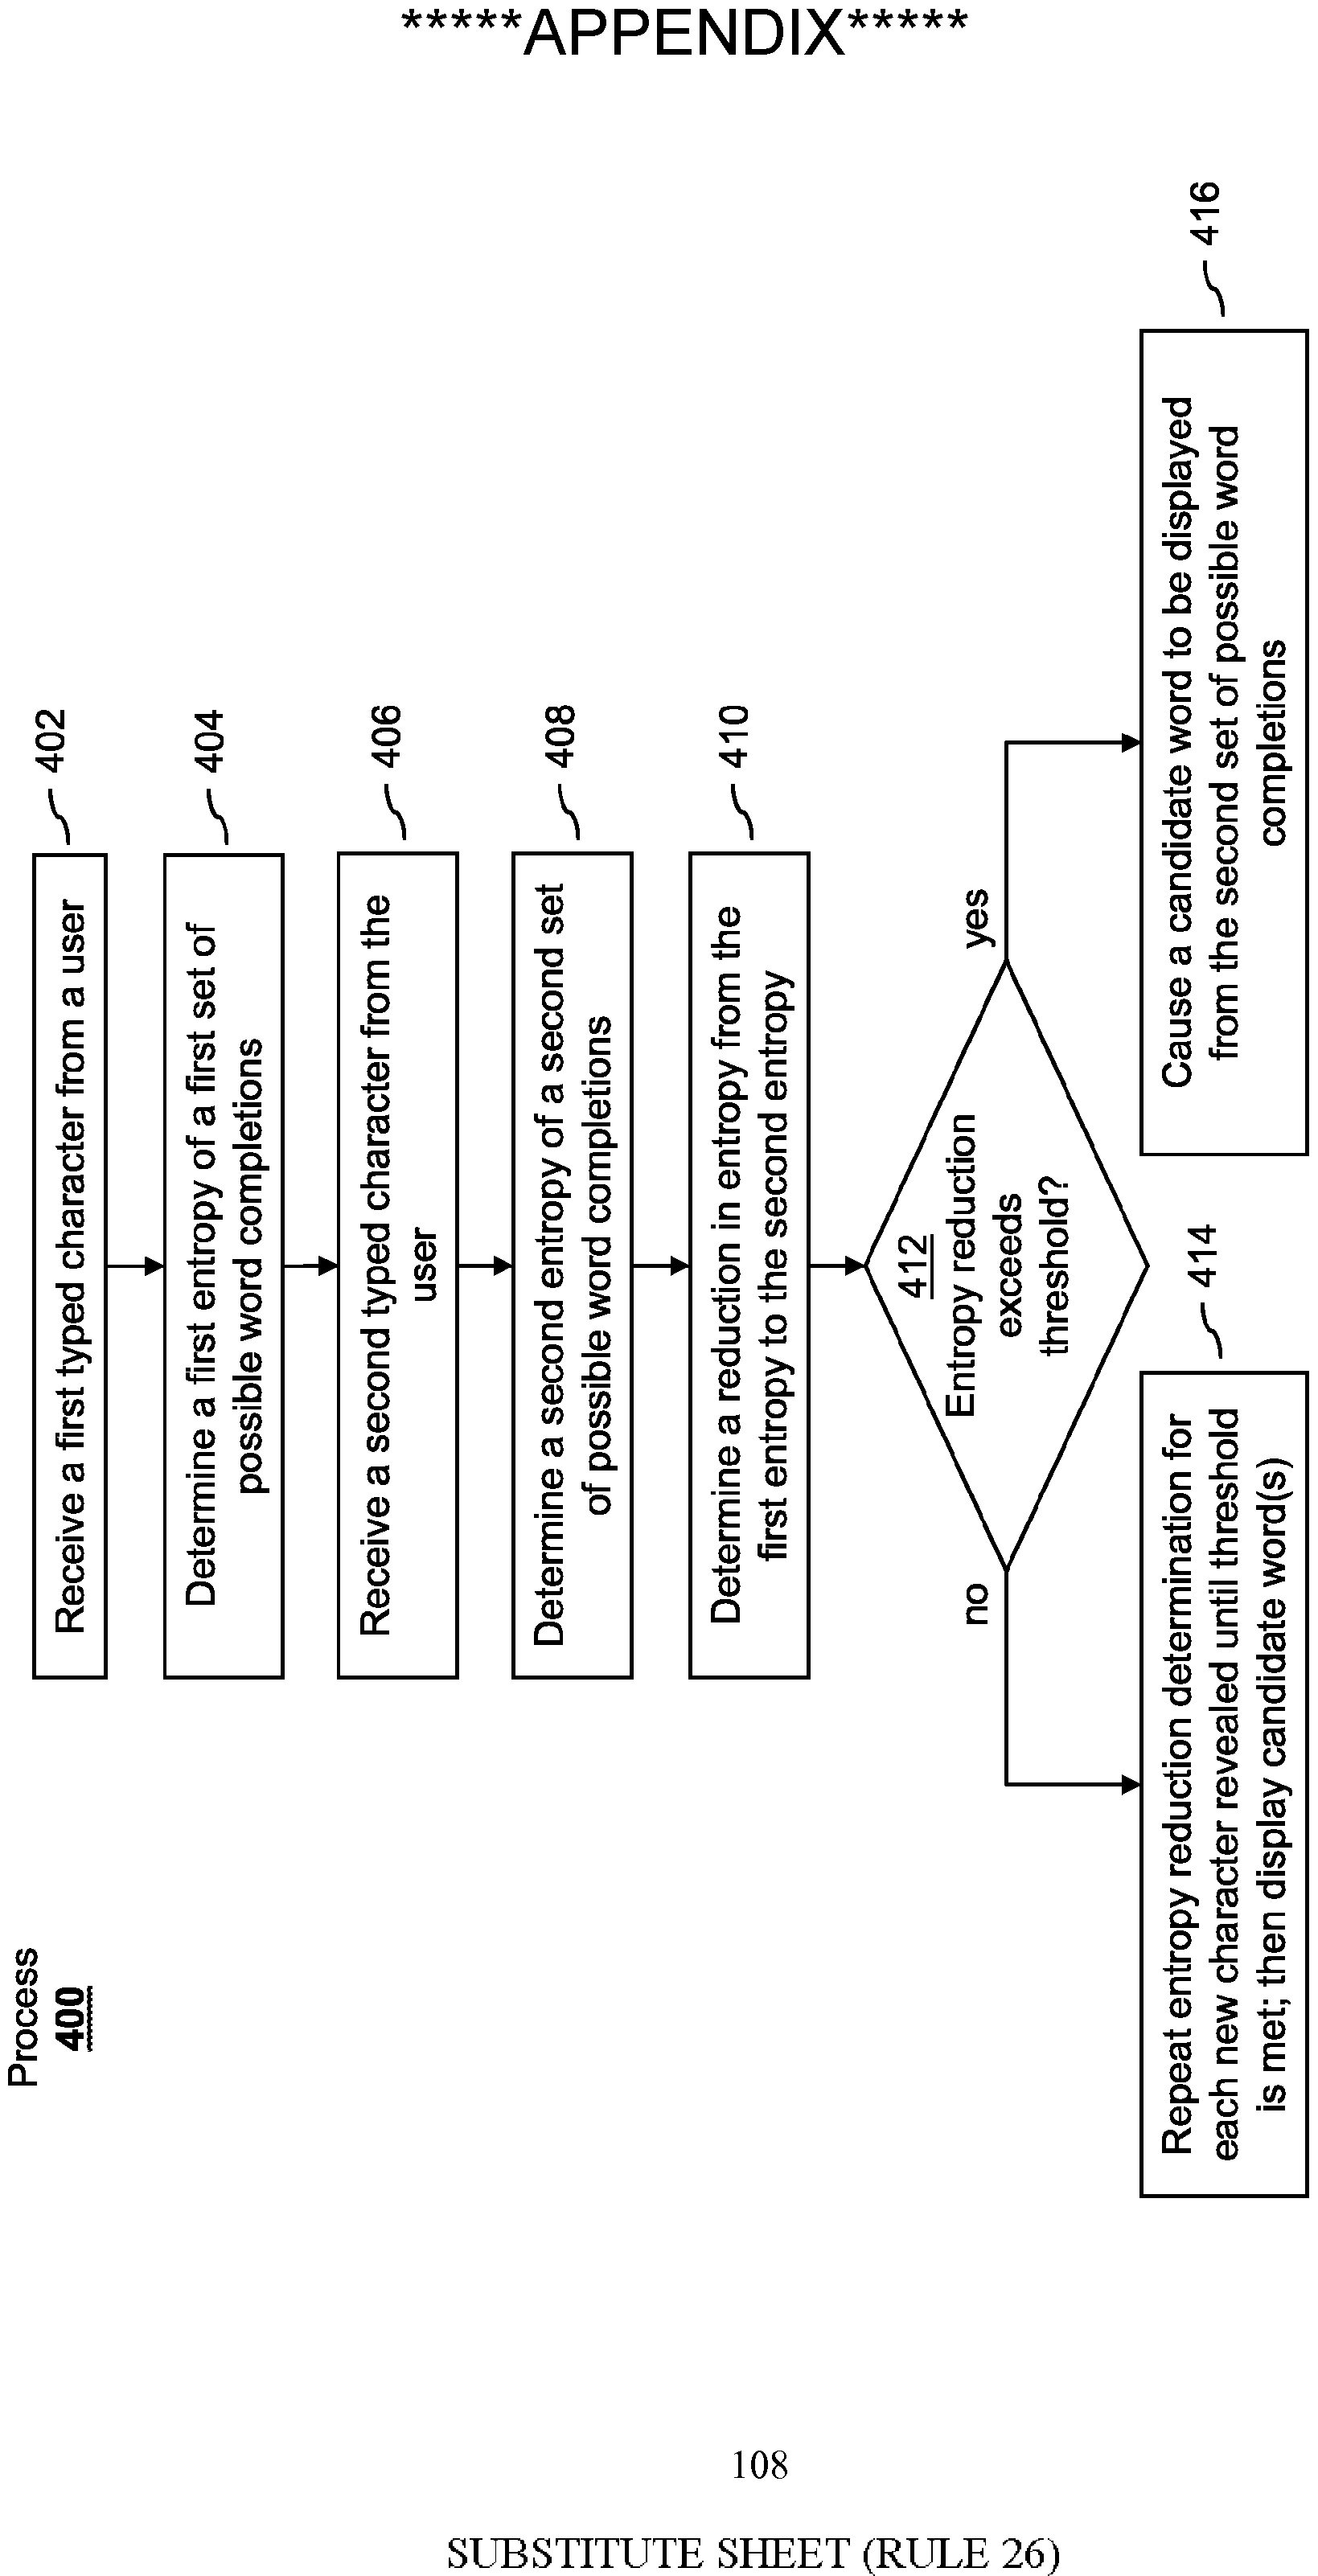 Wo2015183699a1 Predictive Messaging Method Google Patents Board Iphone 6 Besides Tv Circuit Diagram Also Hfc Work On Figure Imgf000110 0001